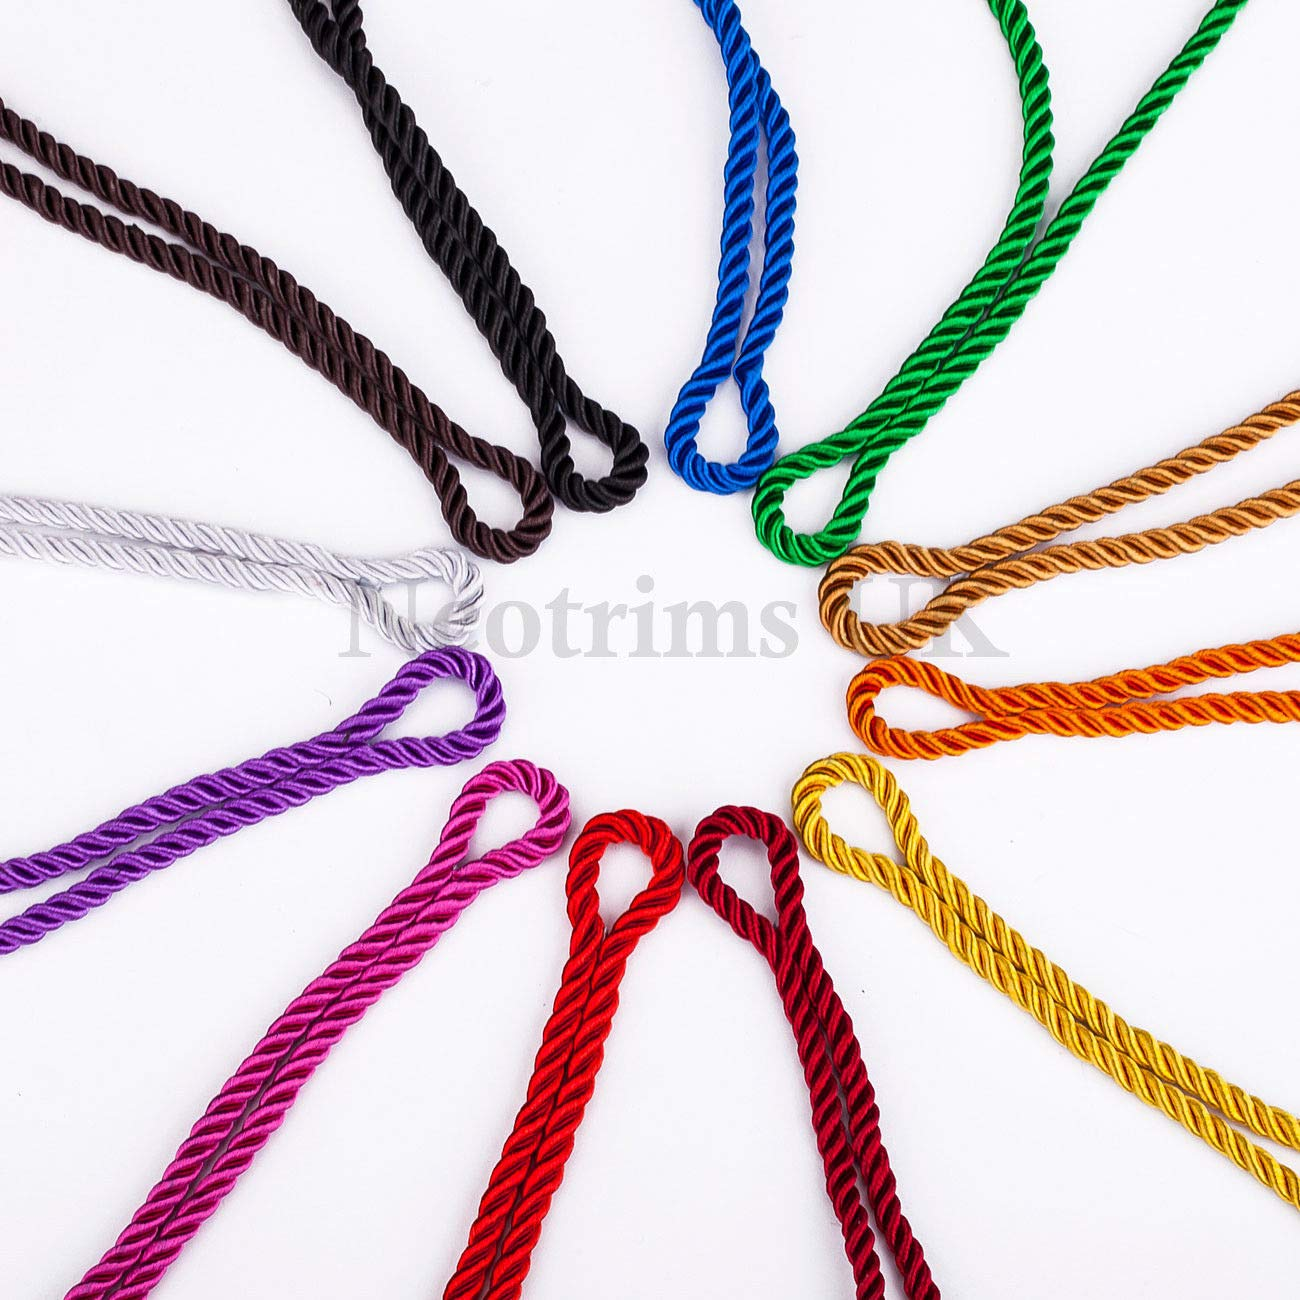 Neotrim 6mm Barley Twist Rope Cord Trimming Prominent 3 Ply Twist Look Home D/écor with 36 Stunning High Sheen Viscose For Piping or Edging Braided